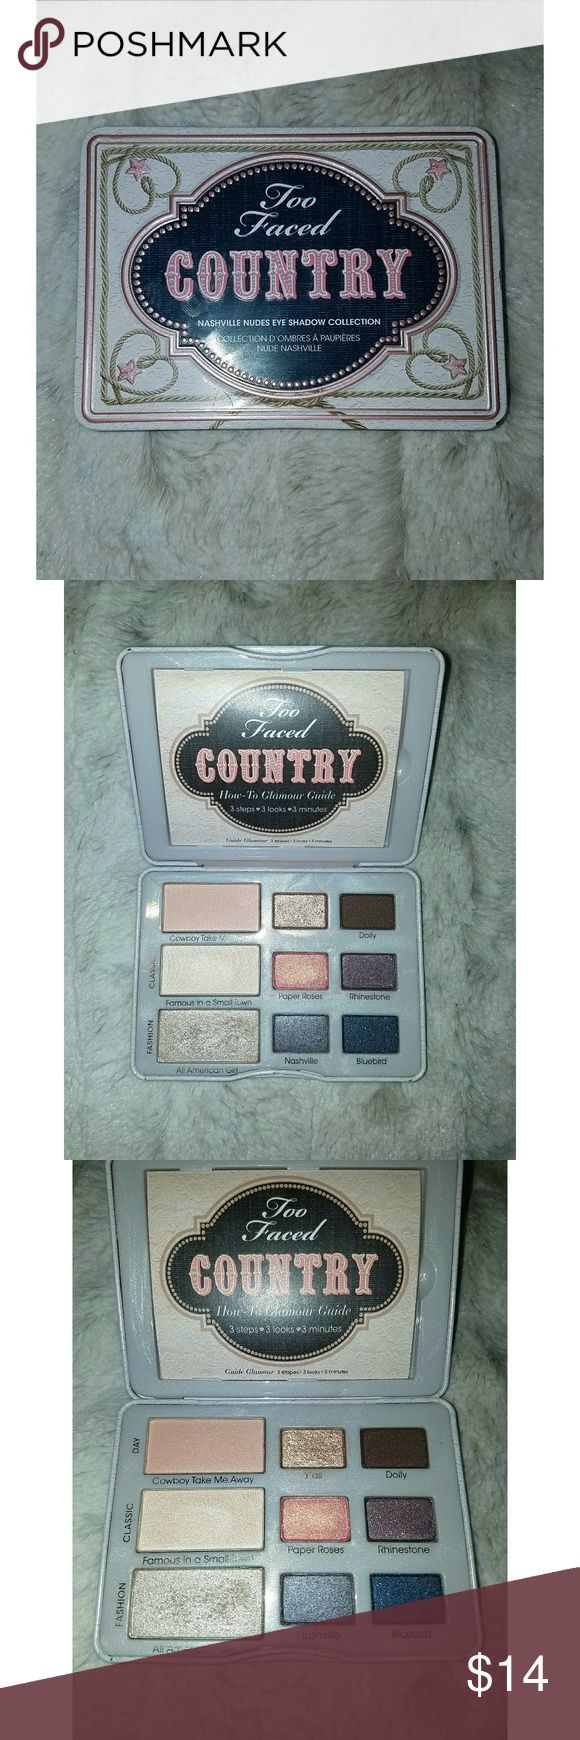 Too Faced Country Eyeshadow Palette Only used a few of the shades, several never used. Comes with How-To Glamour Guide. Too Faced Makeup Eyeshadow